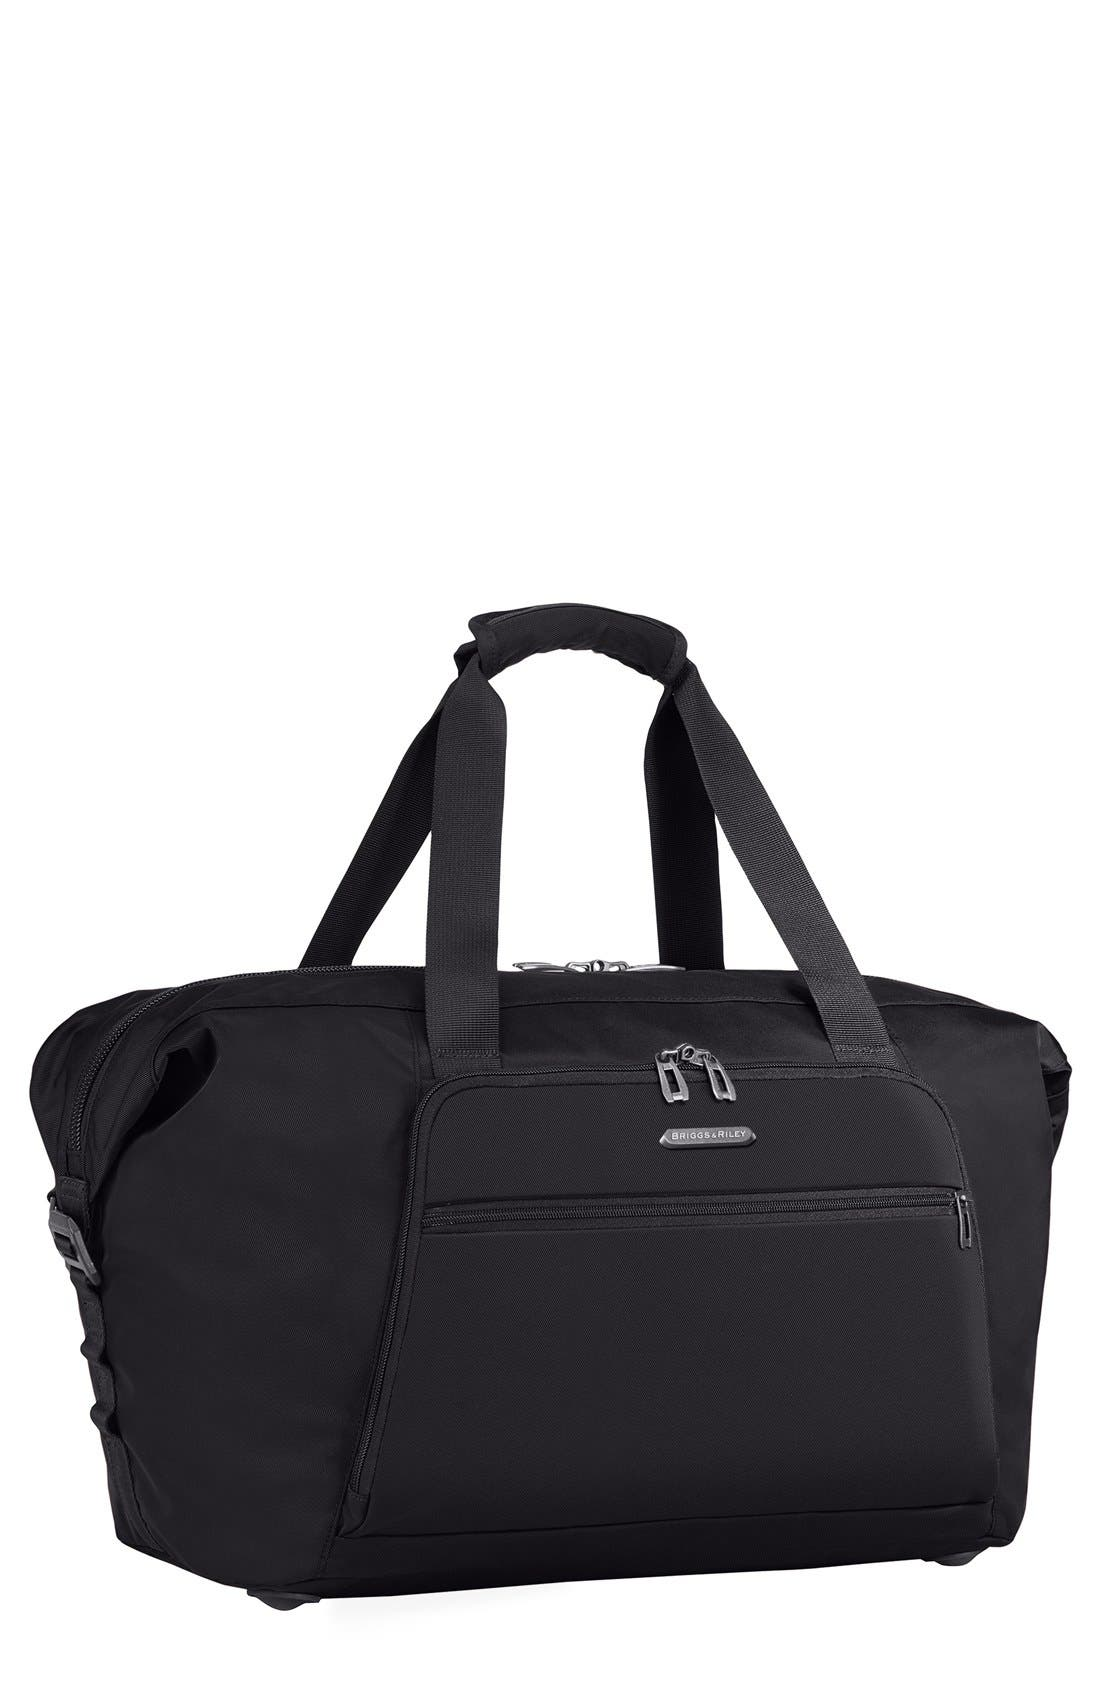 BRIGGS & RILEY Transcend Duffel Bag